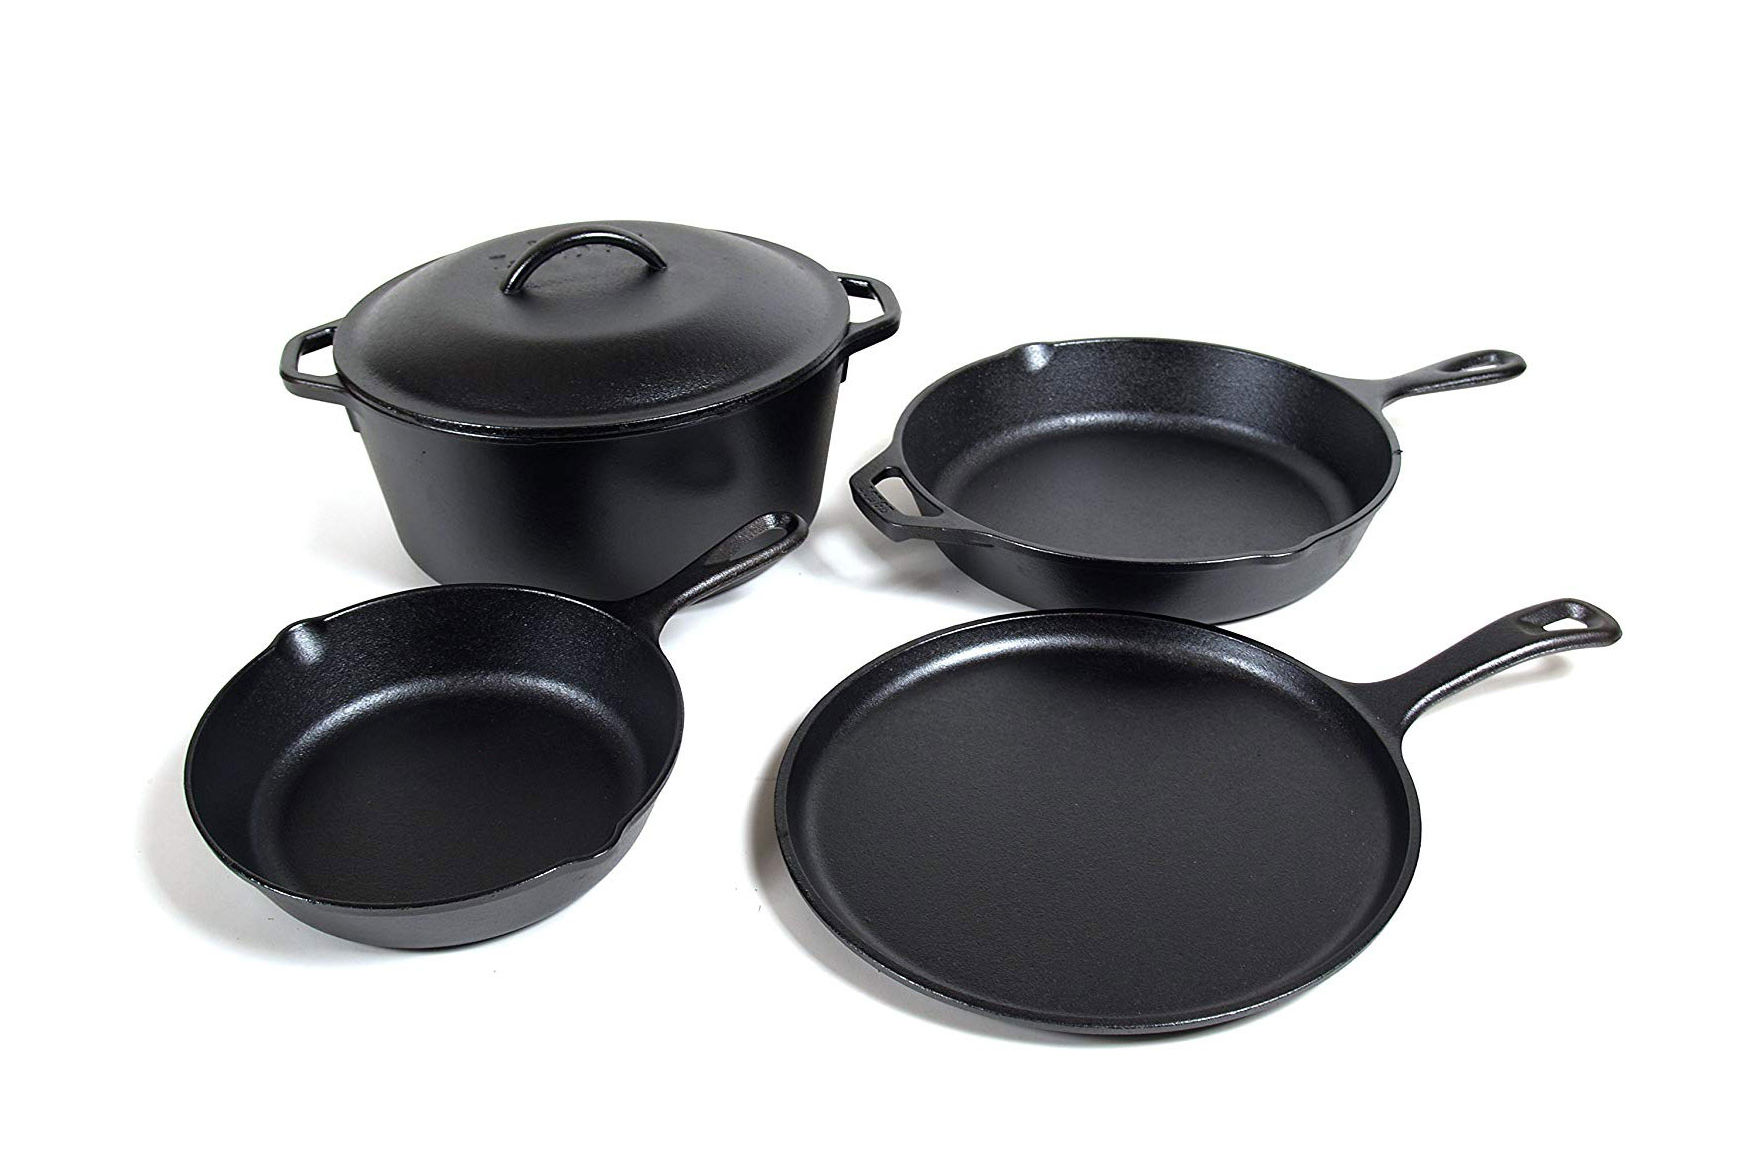 Lodge's Best Cast Iron Cookware Set Is on Super Sale for Amazon Prime Day